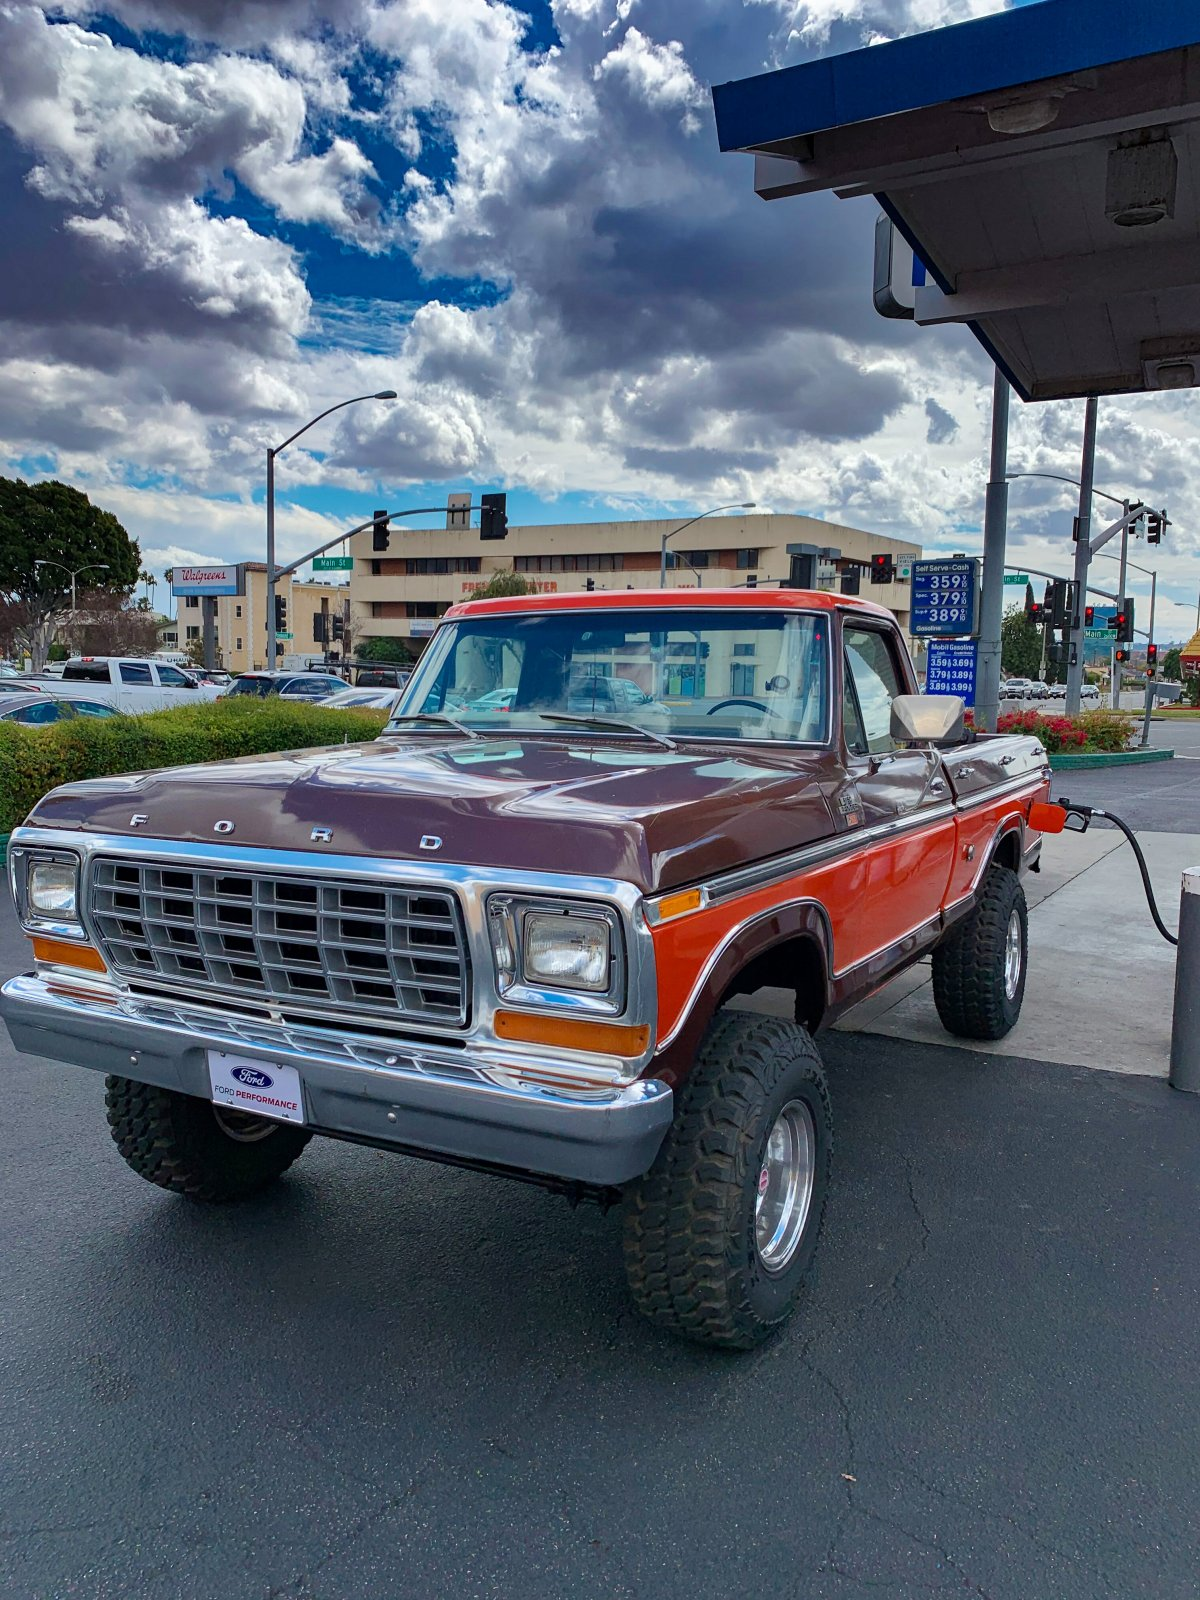 1979 Ford F-150 With Original paint 4x4 7.jpg